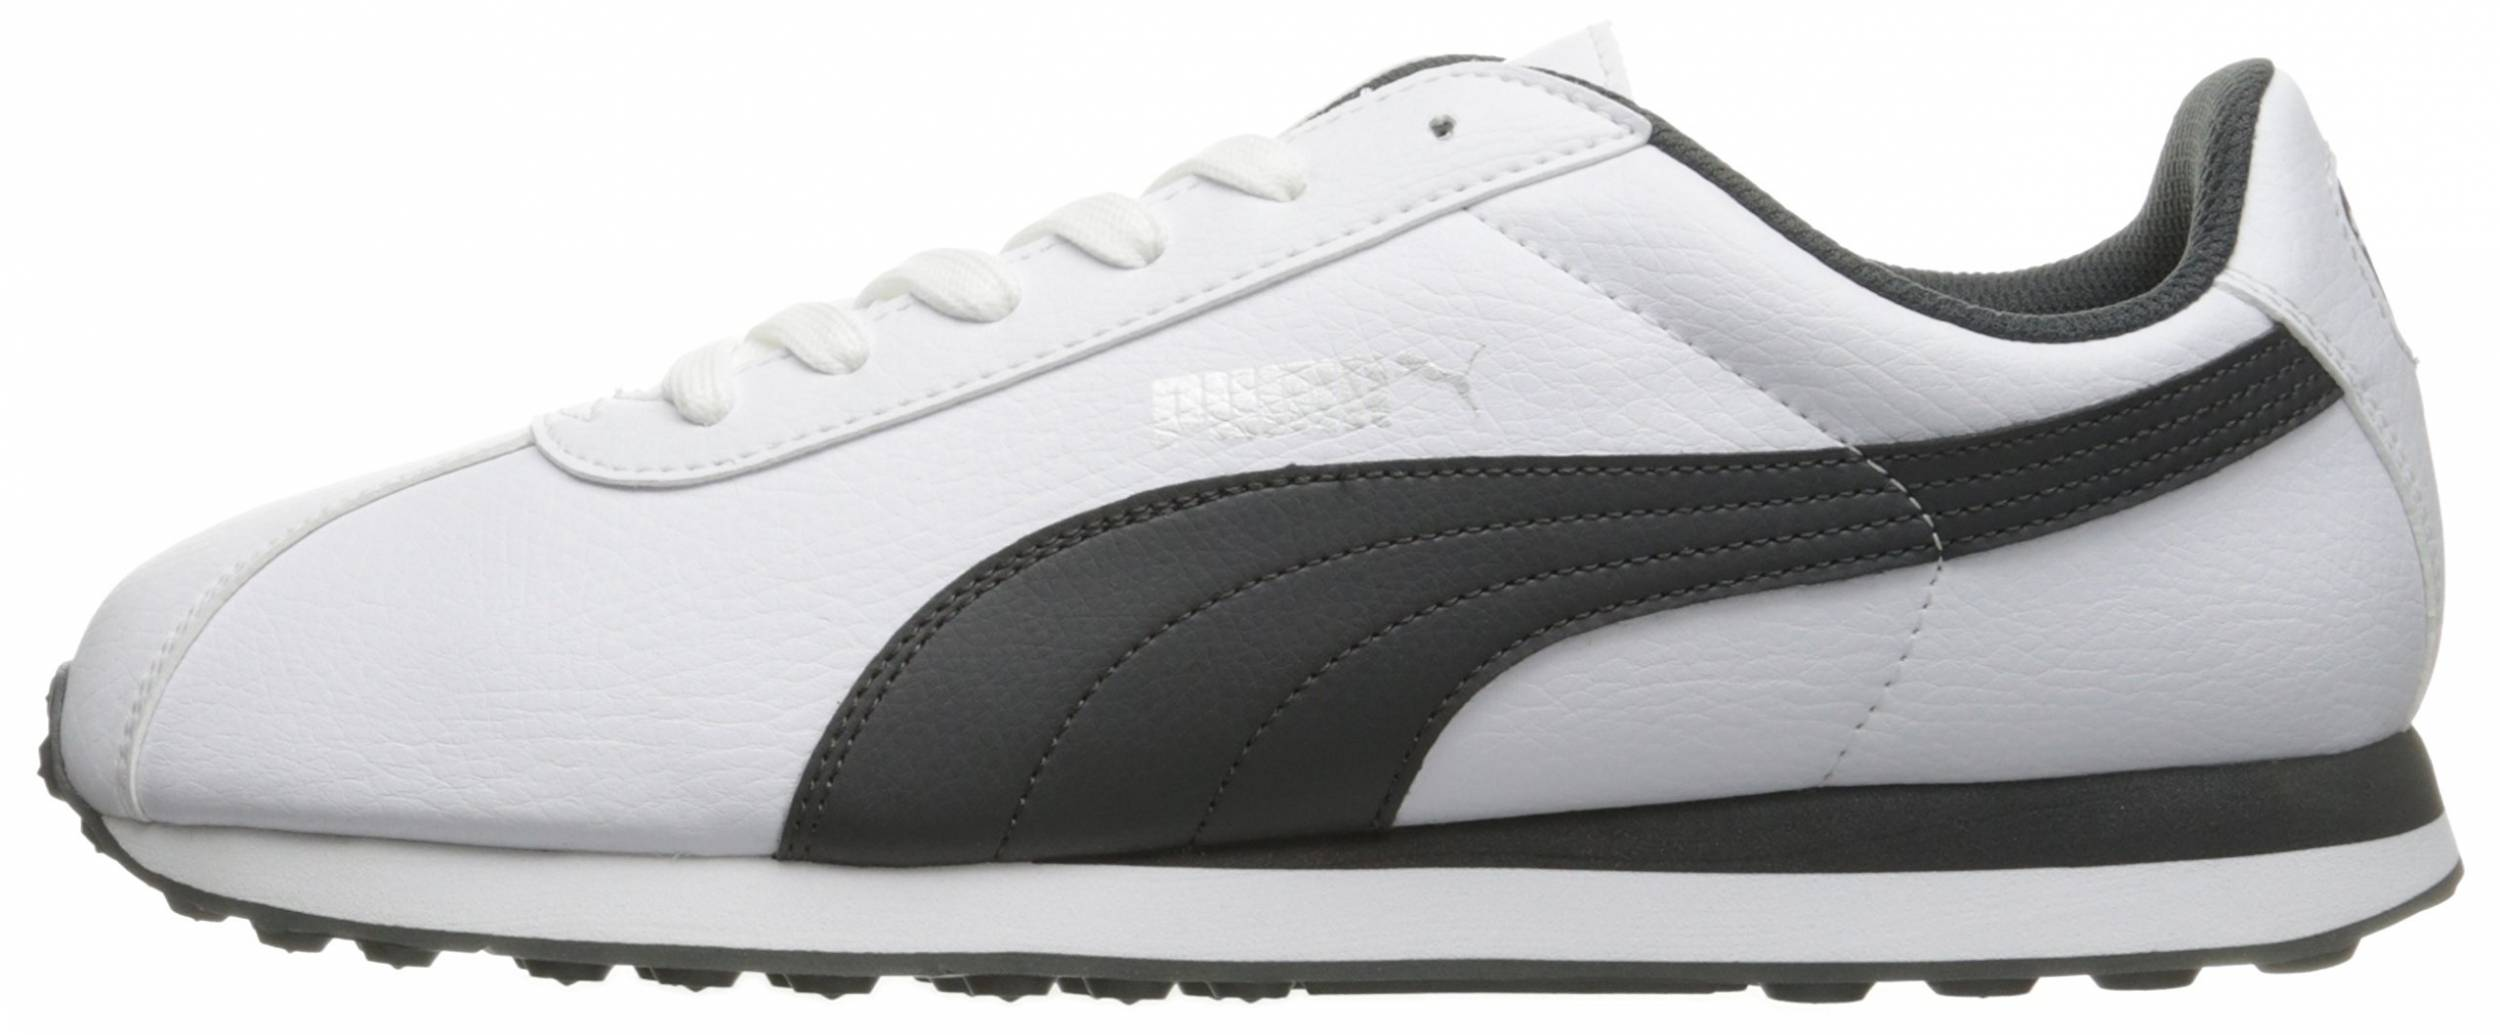 Puma Turin sneakers (only $25) | RunRepeat